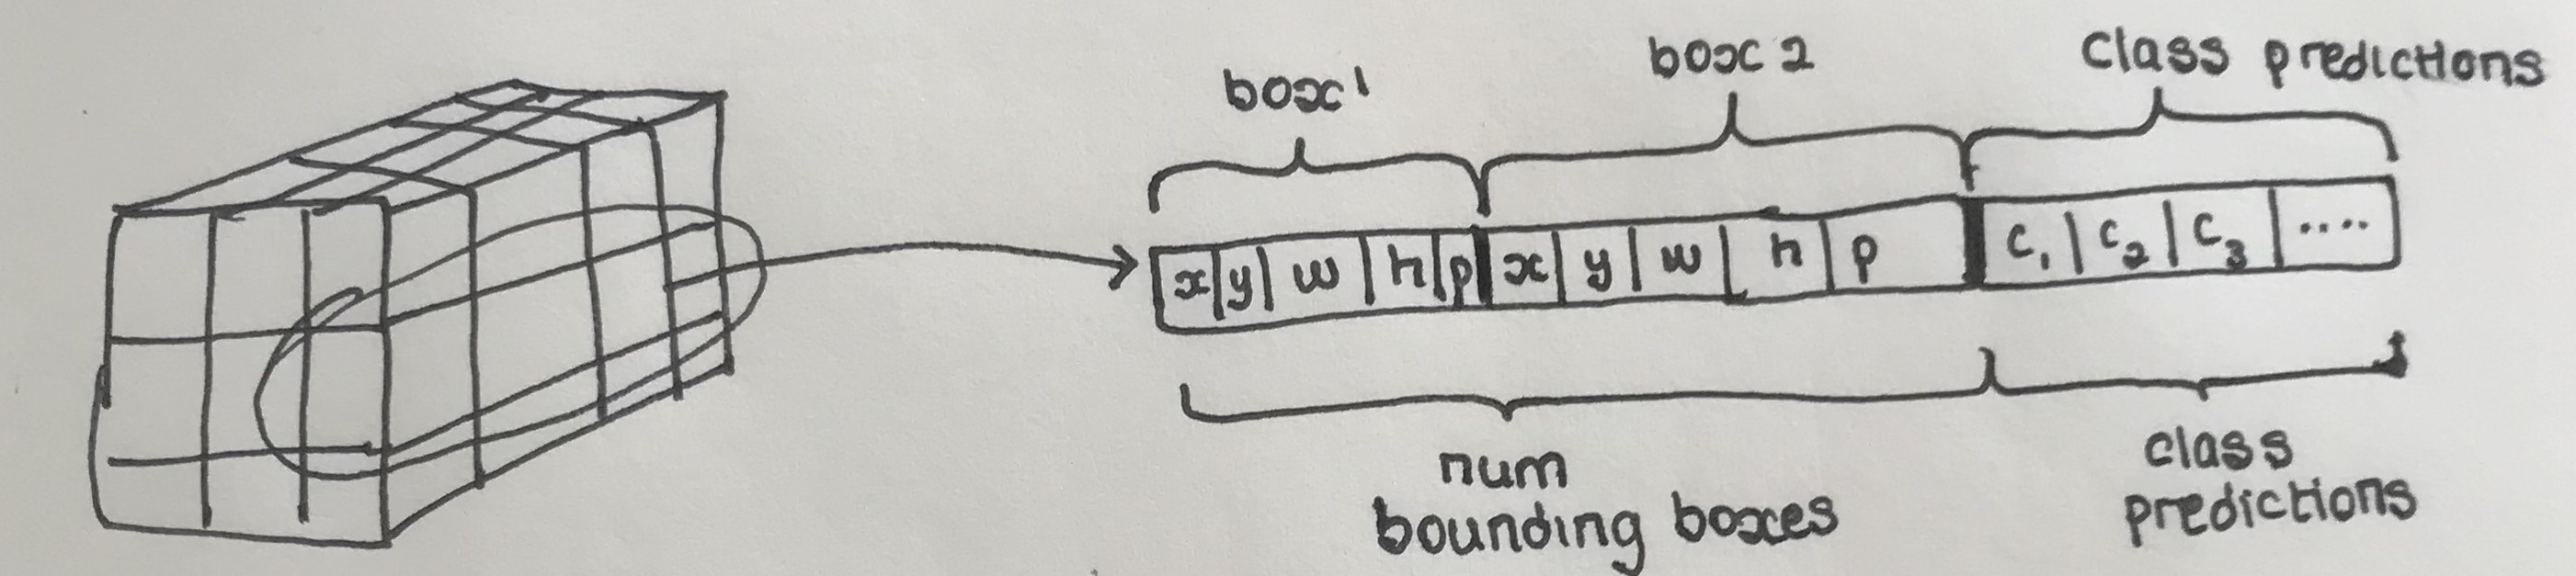 Converting Predictions to Bounding Boxes